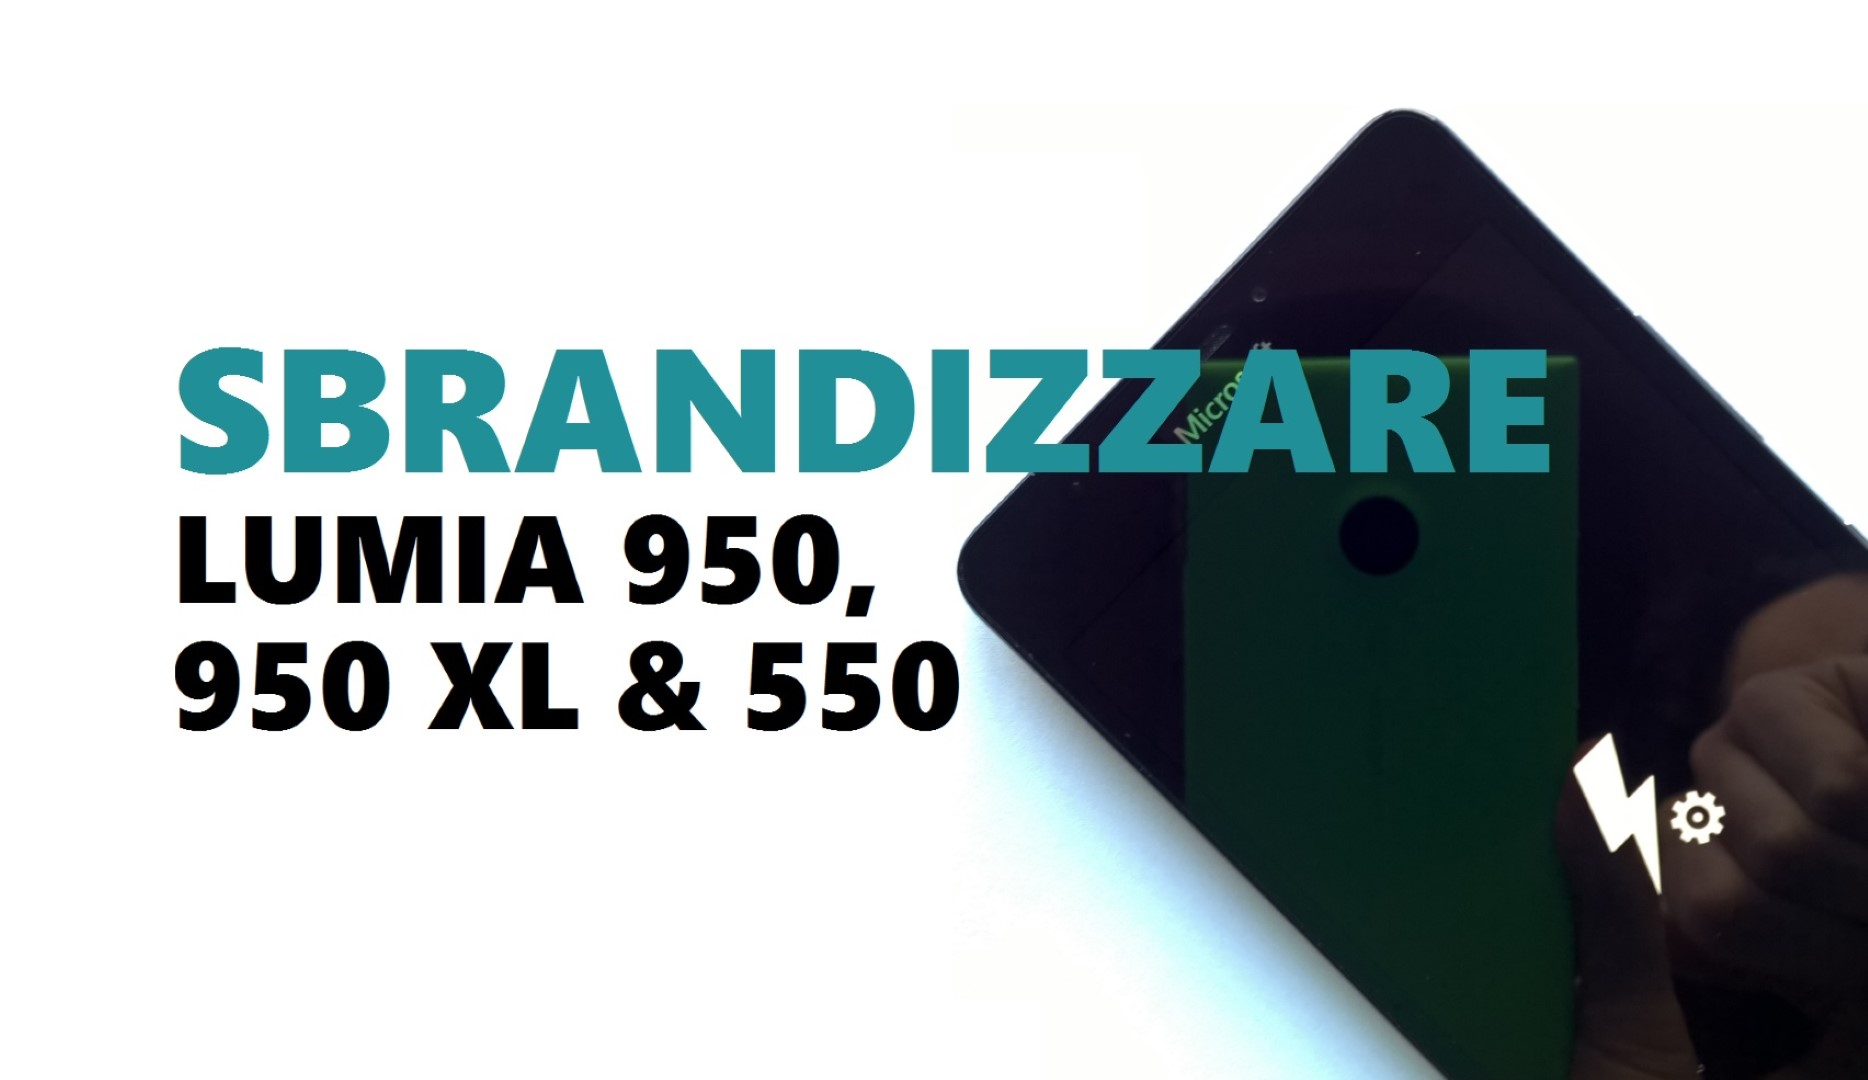 lumia-950-xl-sbrandizzare (Large)